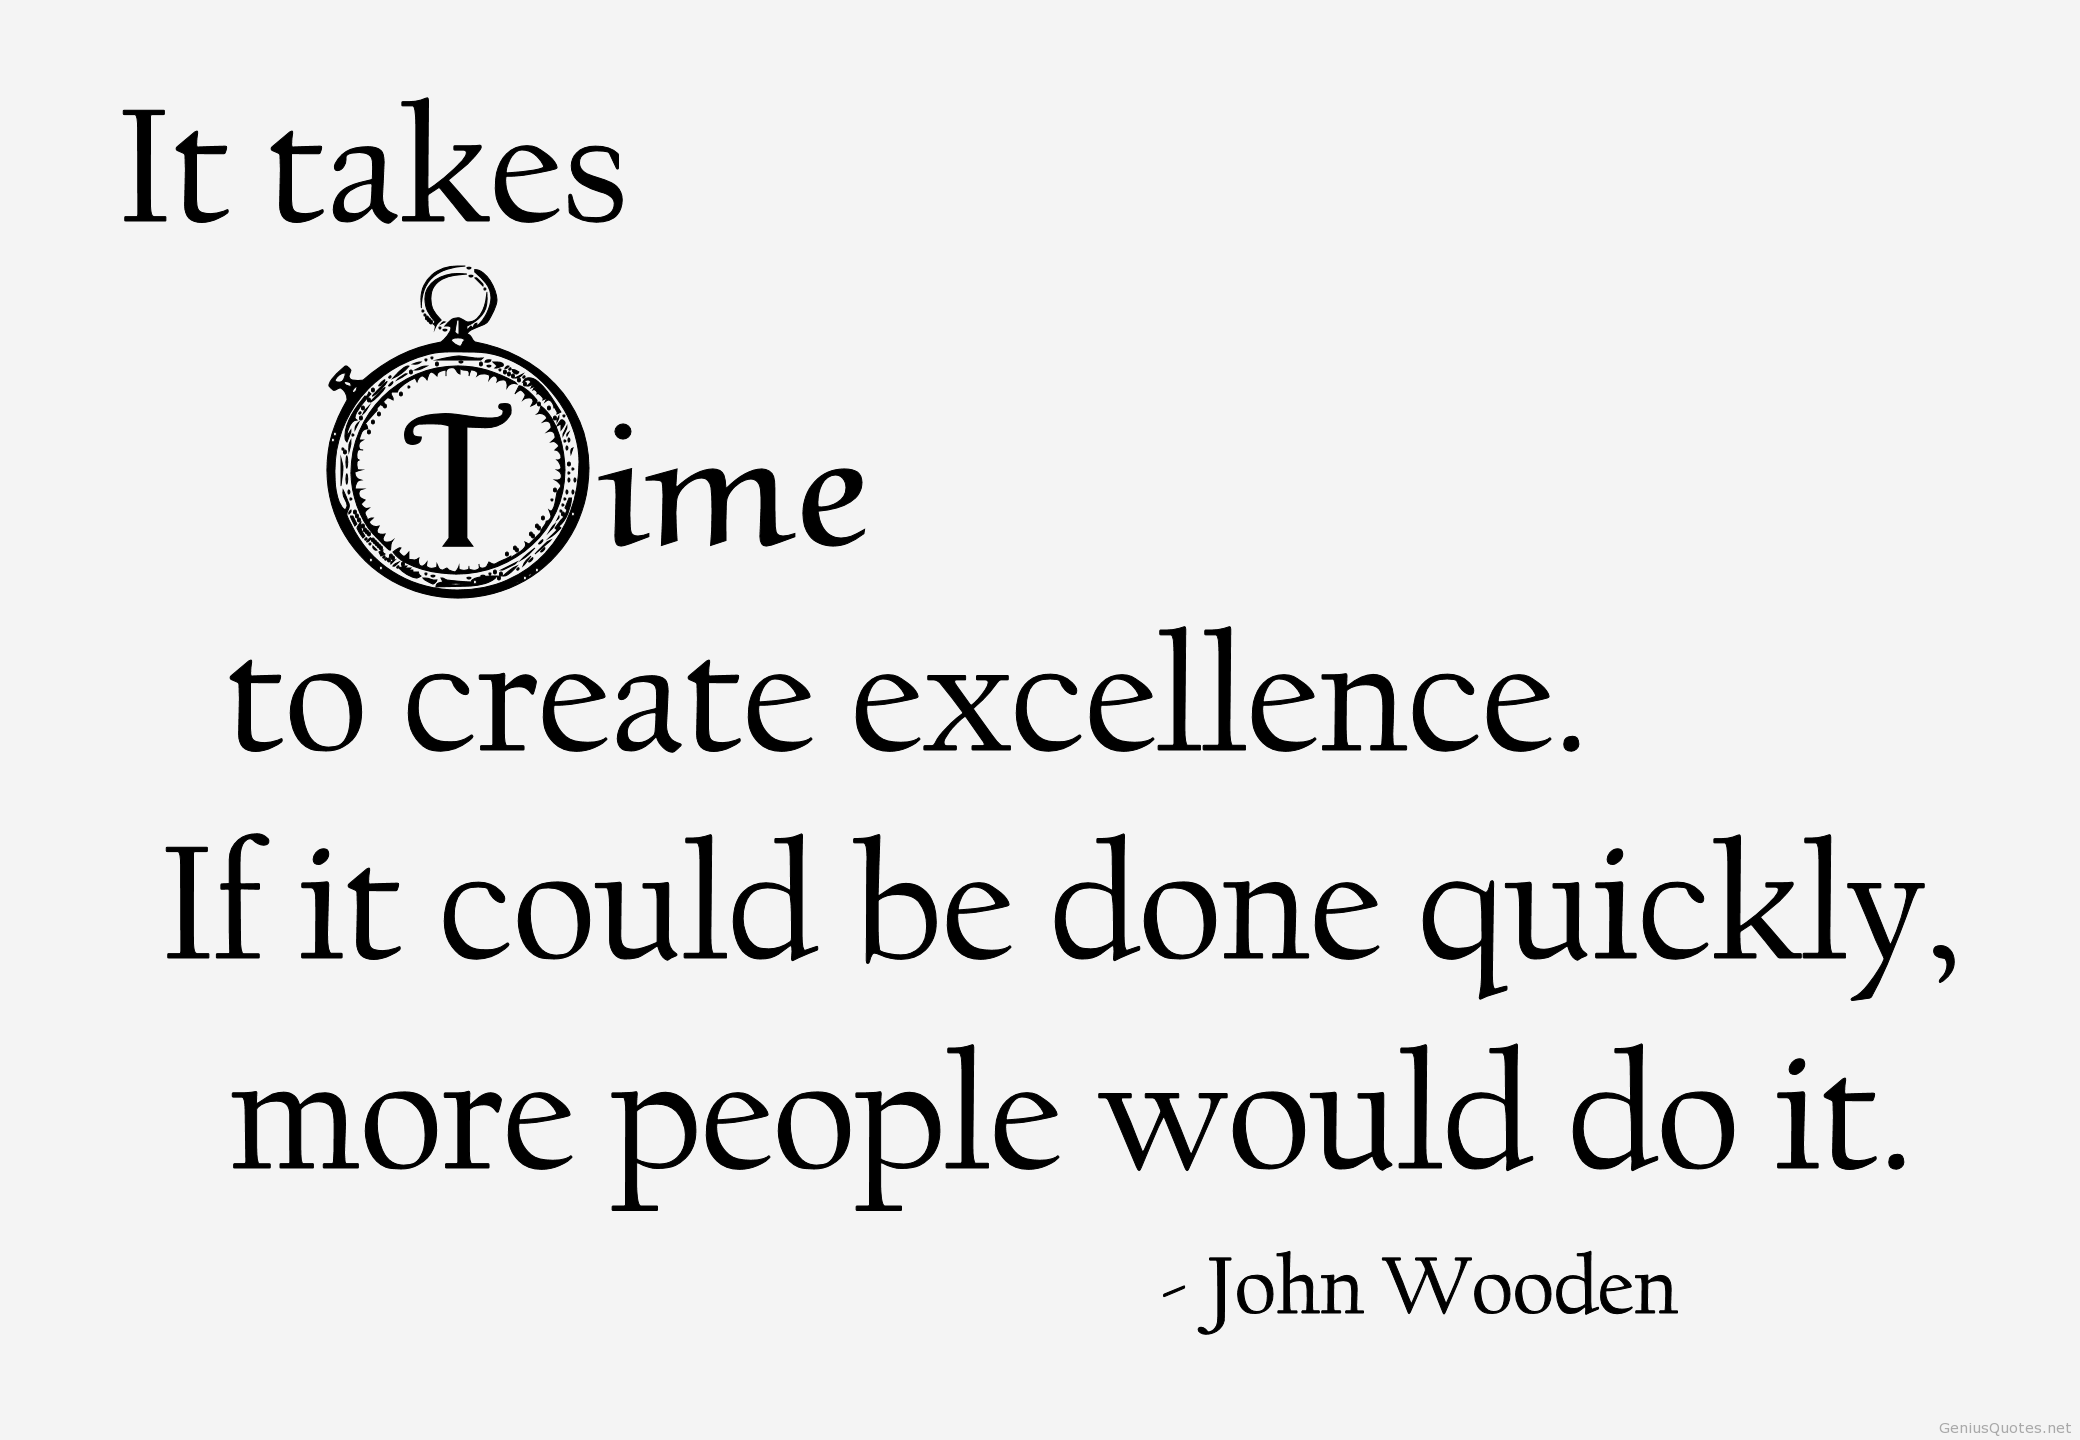 Incredible John Wooden Quotations